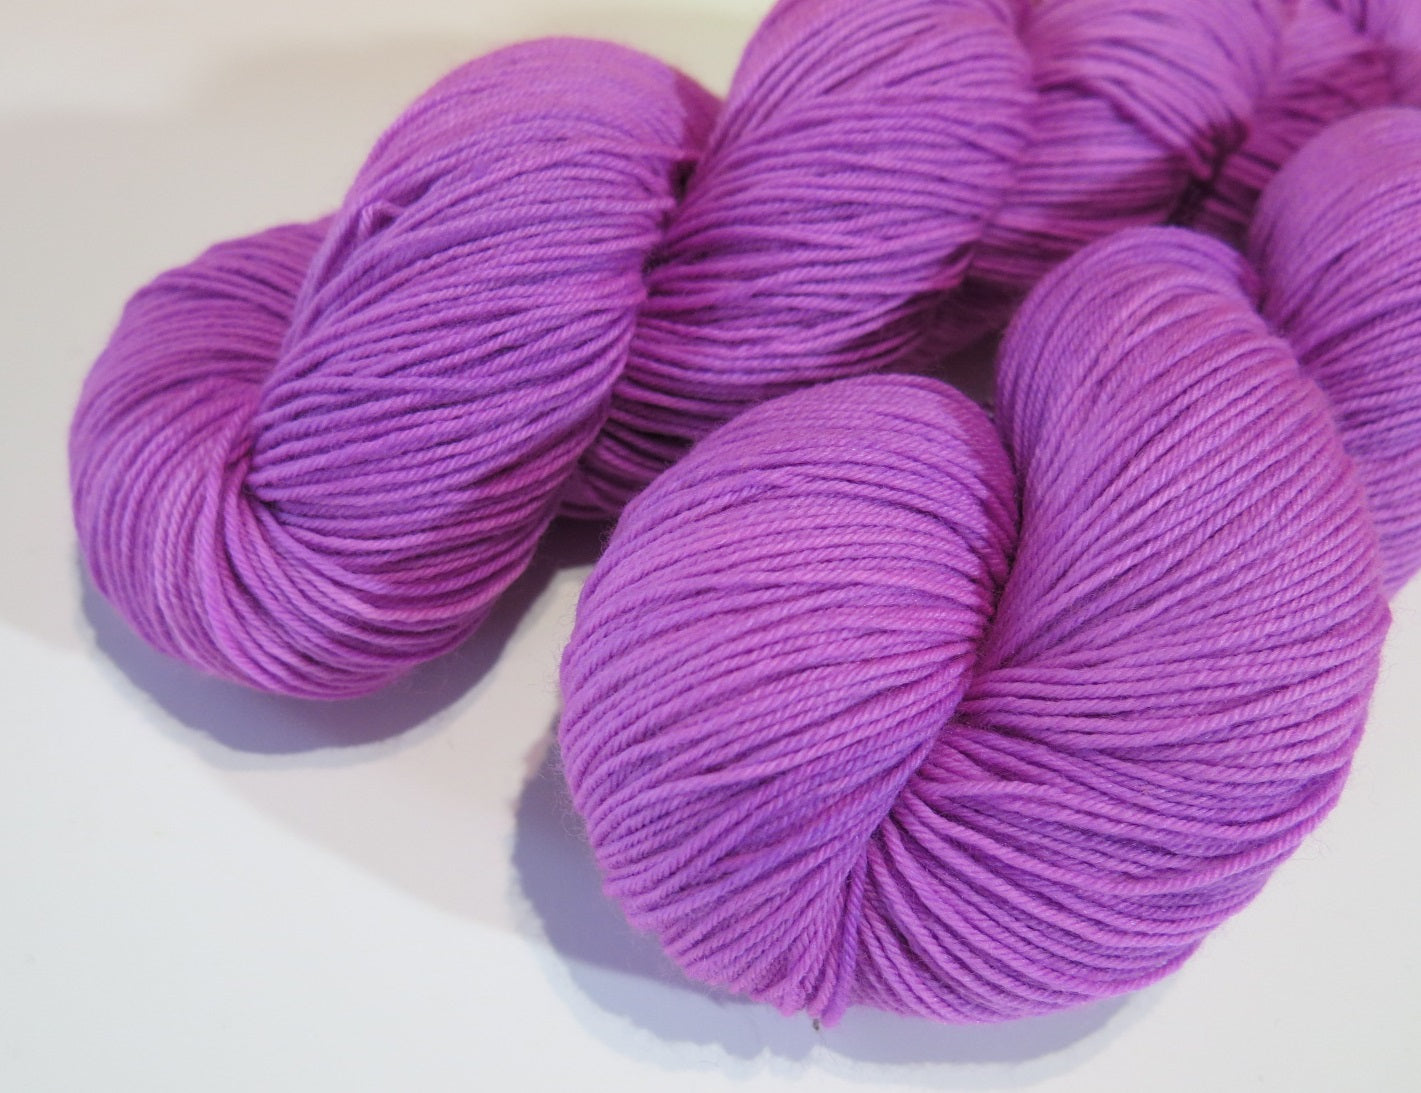 uv reactive hand dyed solid light purple sock yarn for knitting and crochet